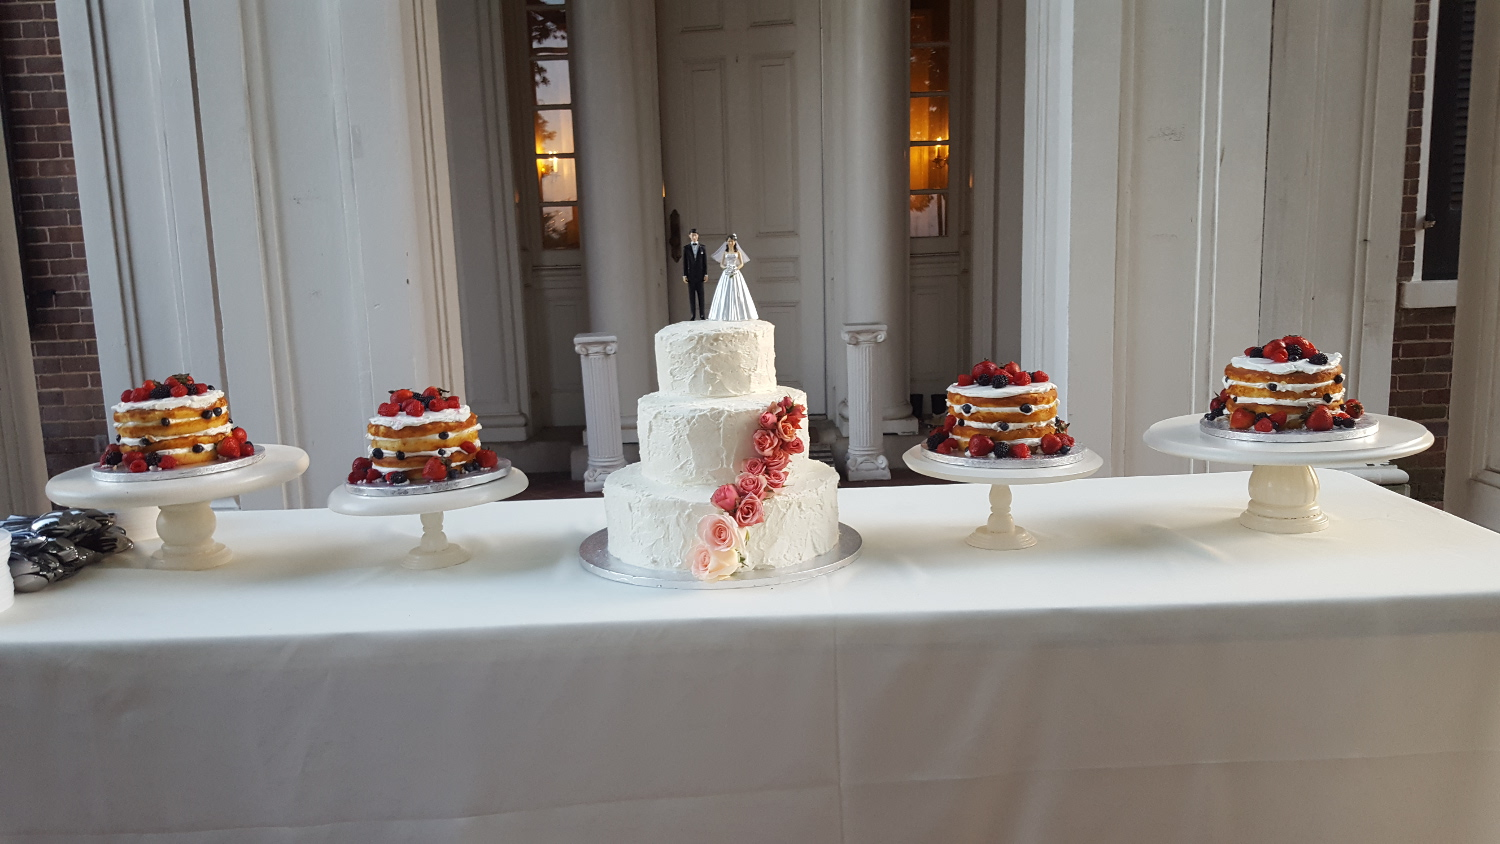 Cake display with 5 cakes.  A 3 tier wedding cake with pink flowers and 4 naked cakes with fruit.